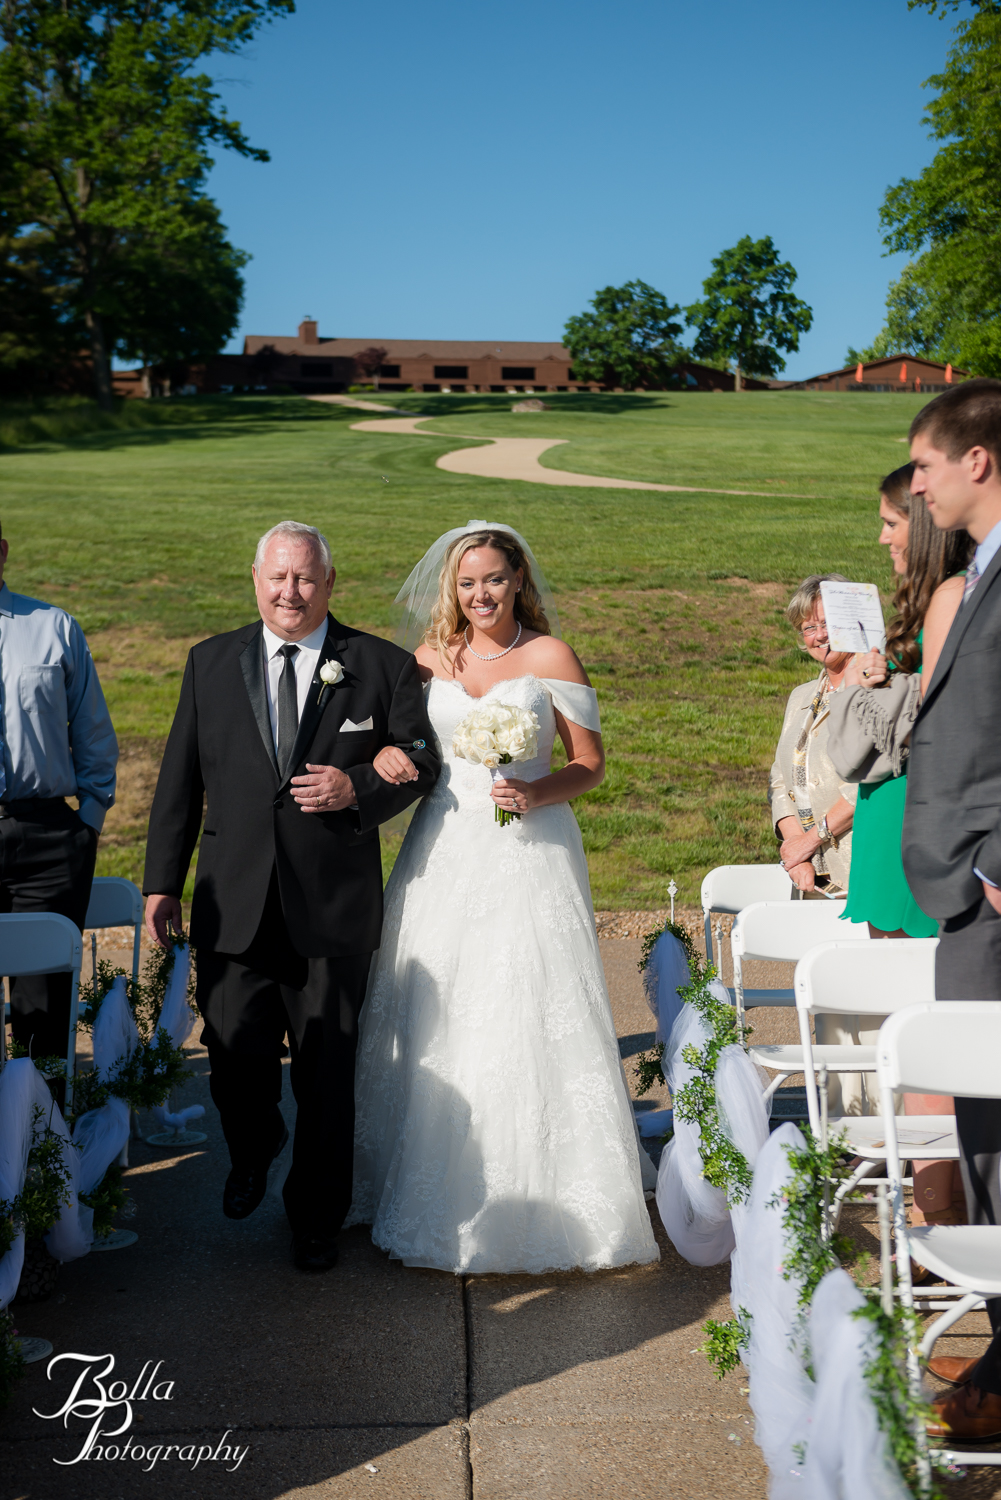 Bolla_Photography_St_Louis_wedding_photographer-0276.jpg